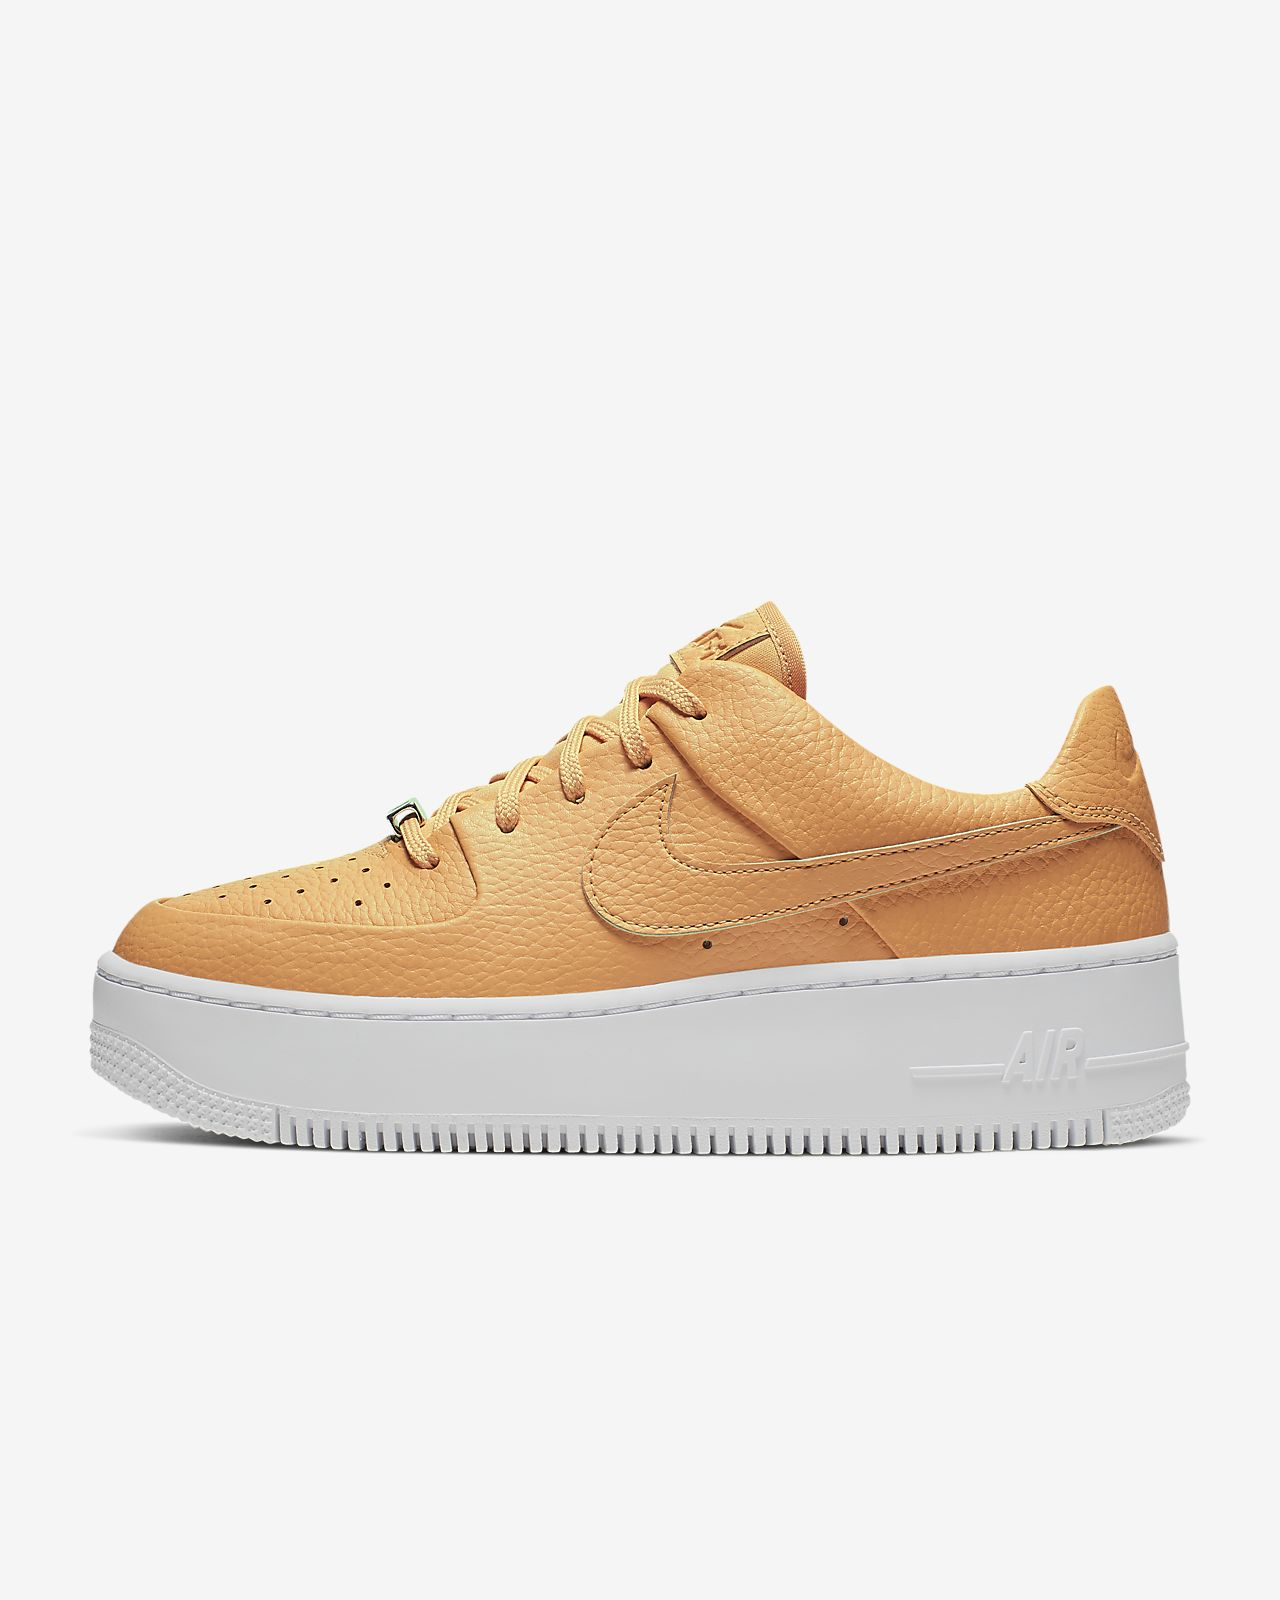 b72b71c91dd Nike Air Force 1 Sage Low Women's Shoe